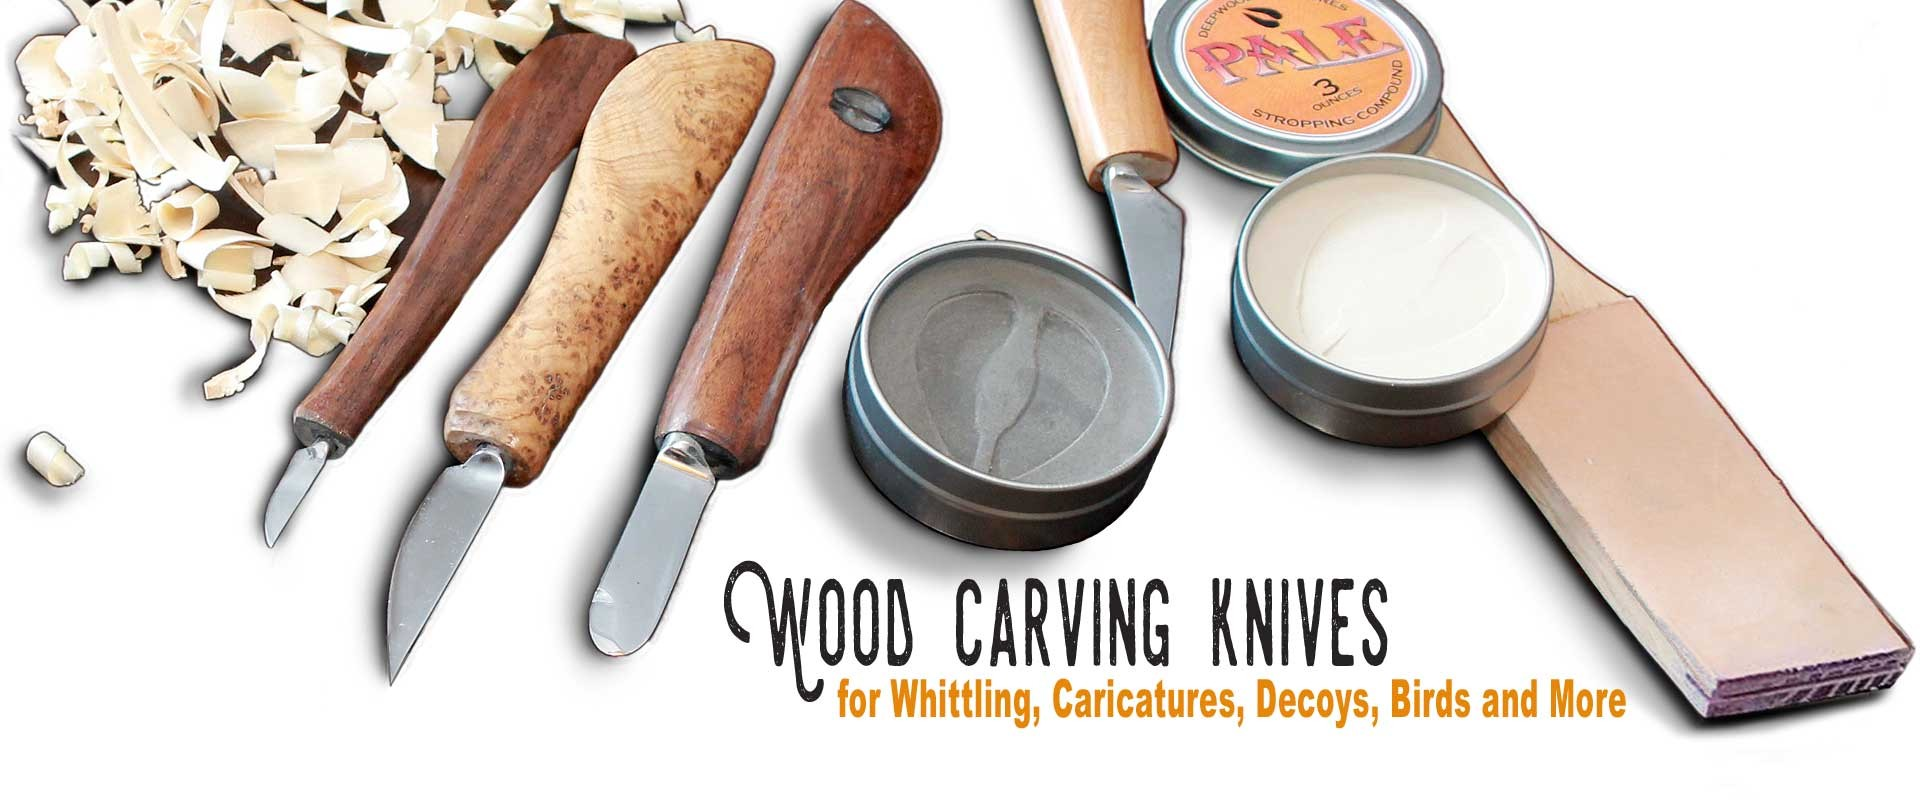 Wood Carving Knives for carving wooden figures